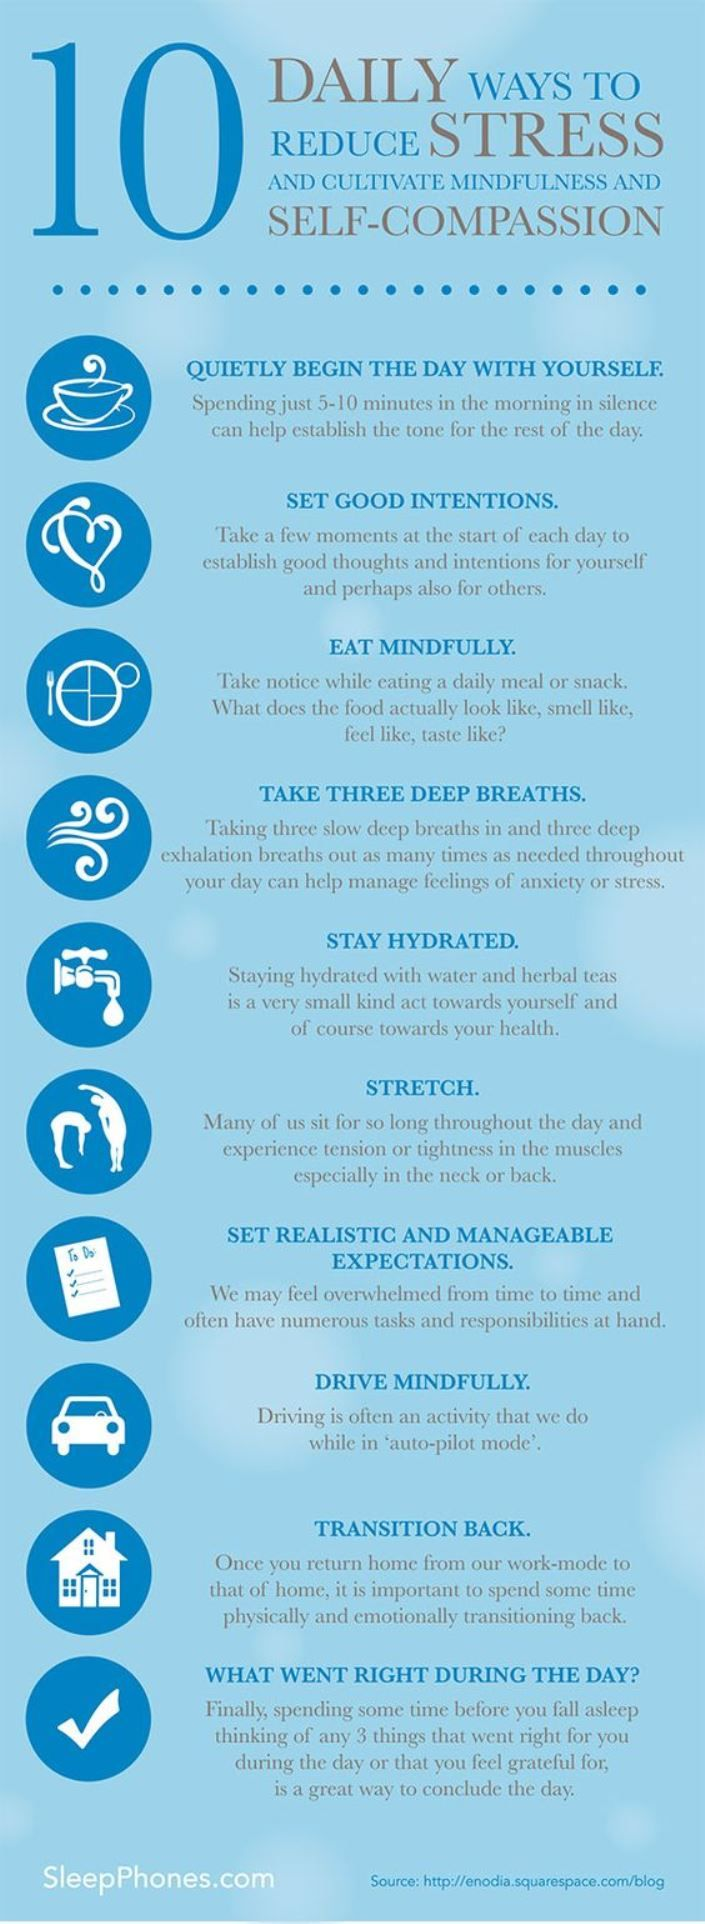 Top tips to staying stress free in the workplace infographic - 10 Daily Ways To Reduce Stress Daily Tips Found This Helpful Infographic On